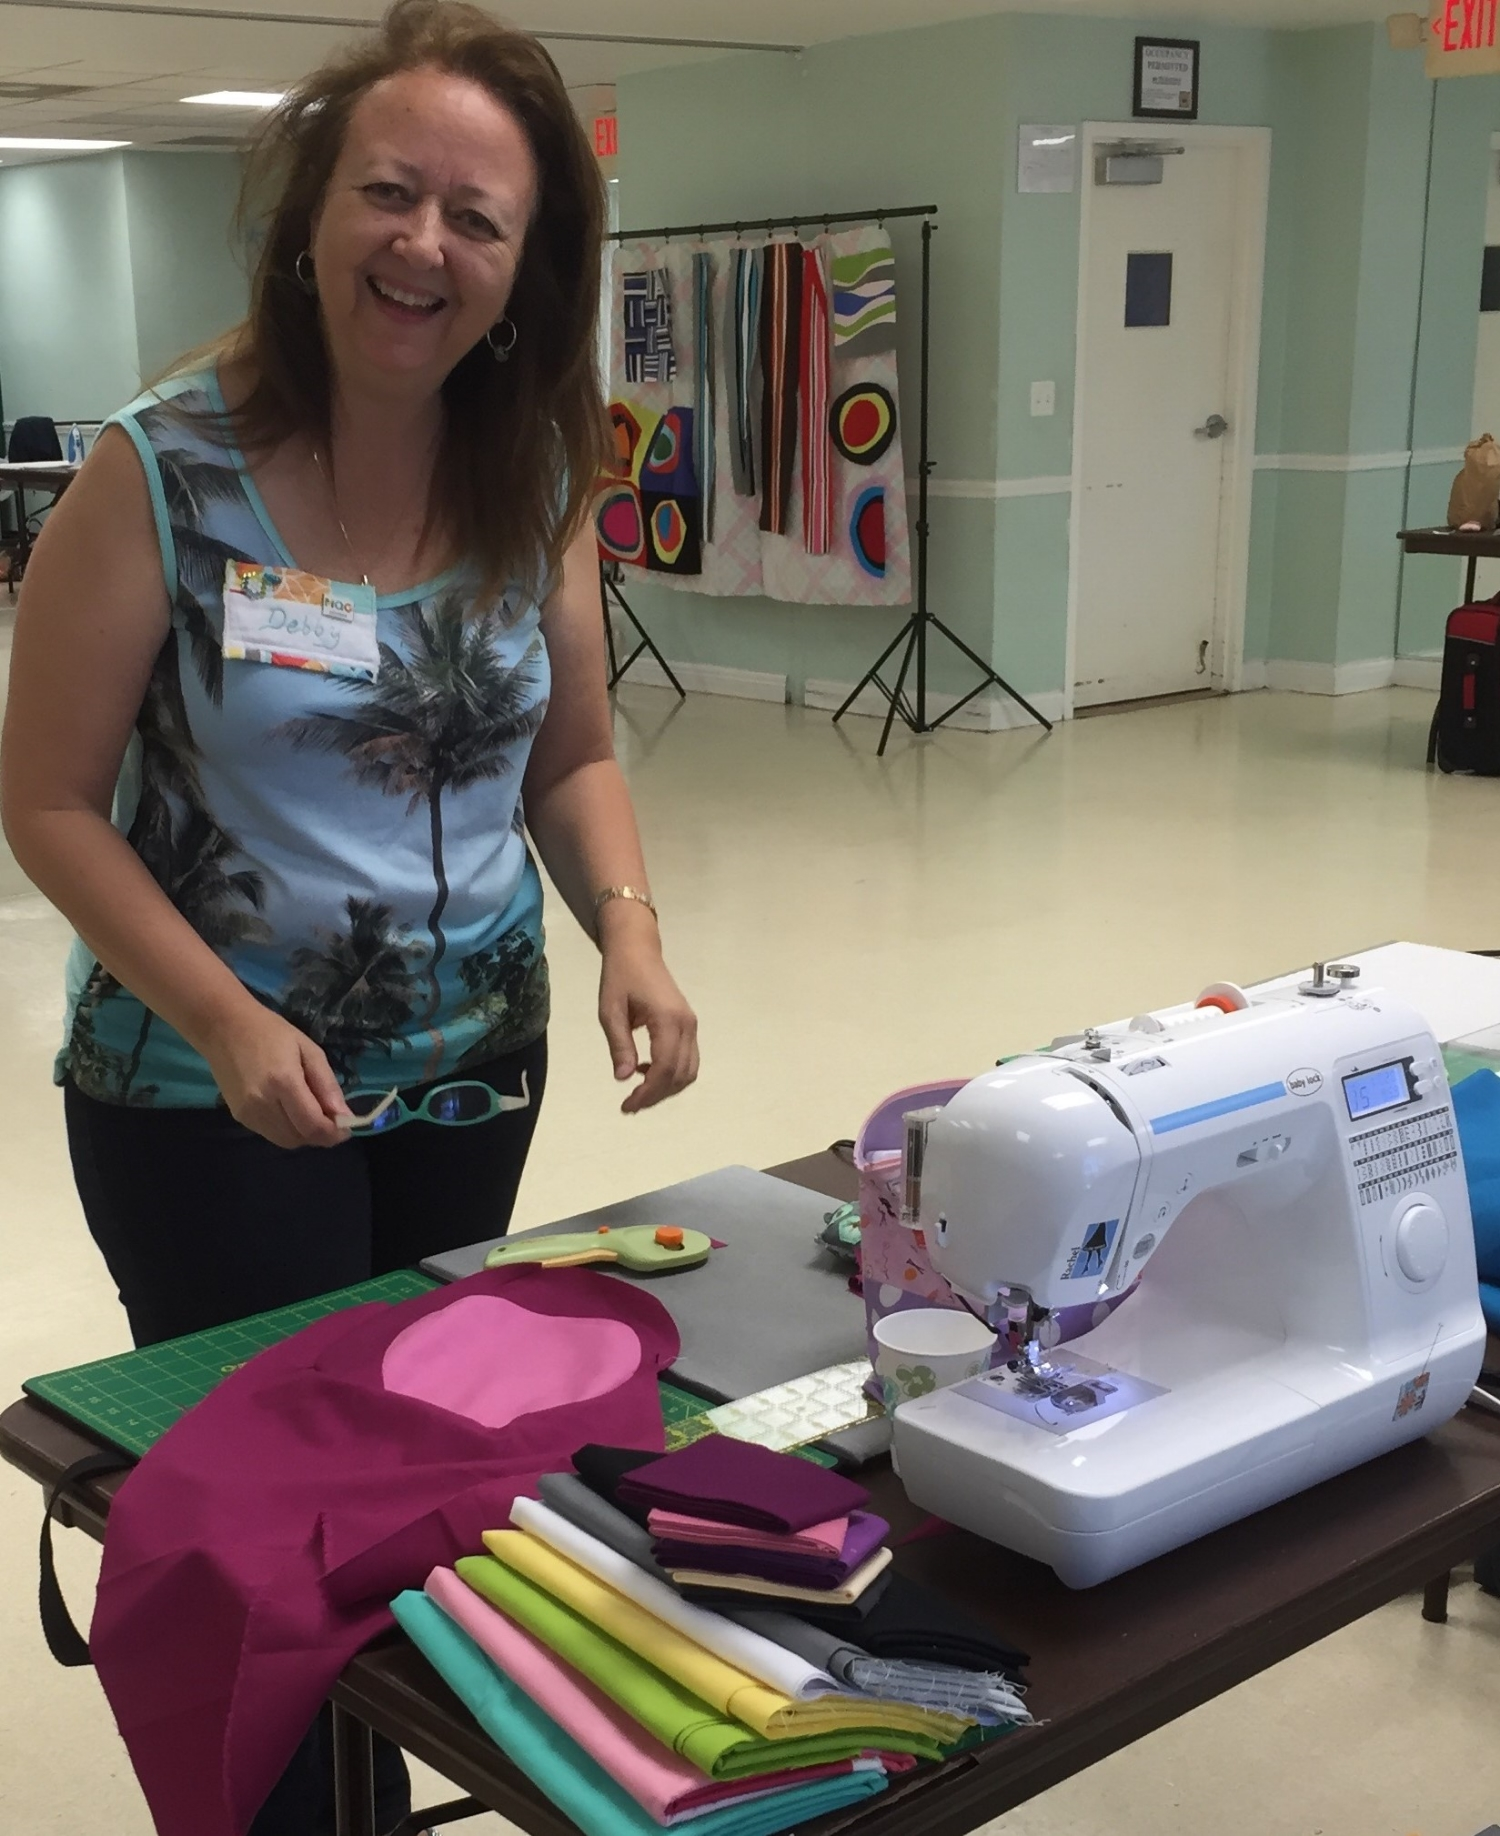 Debby Schindall working on her circle